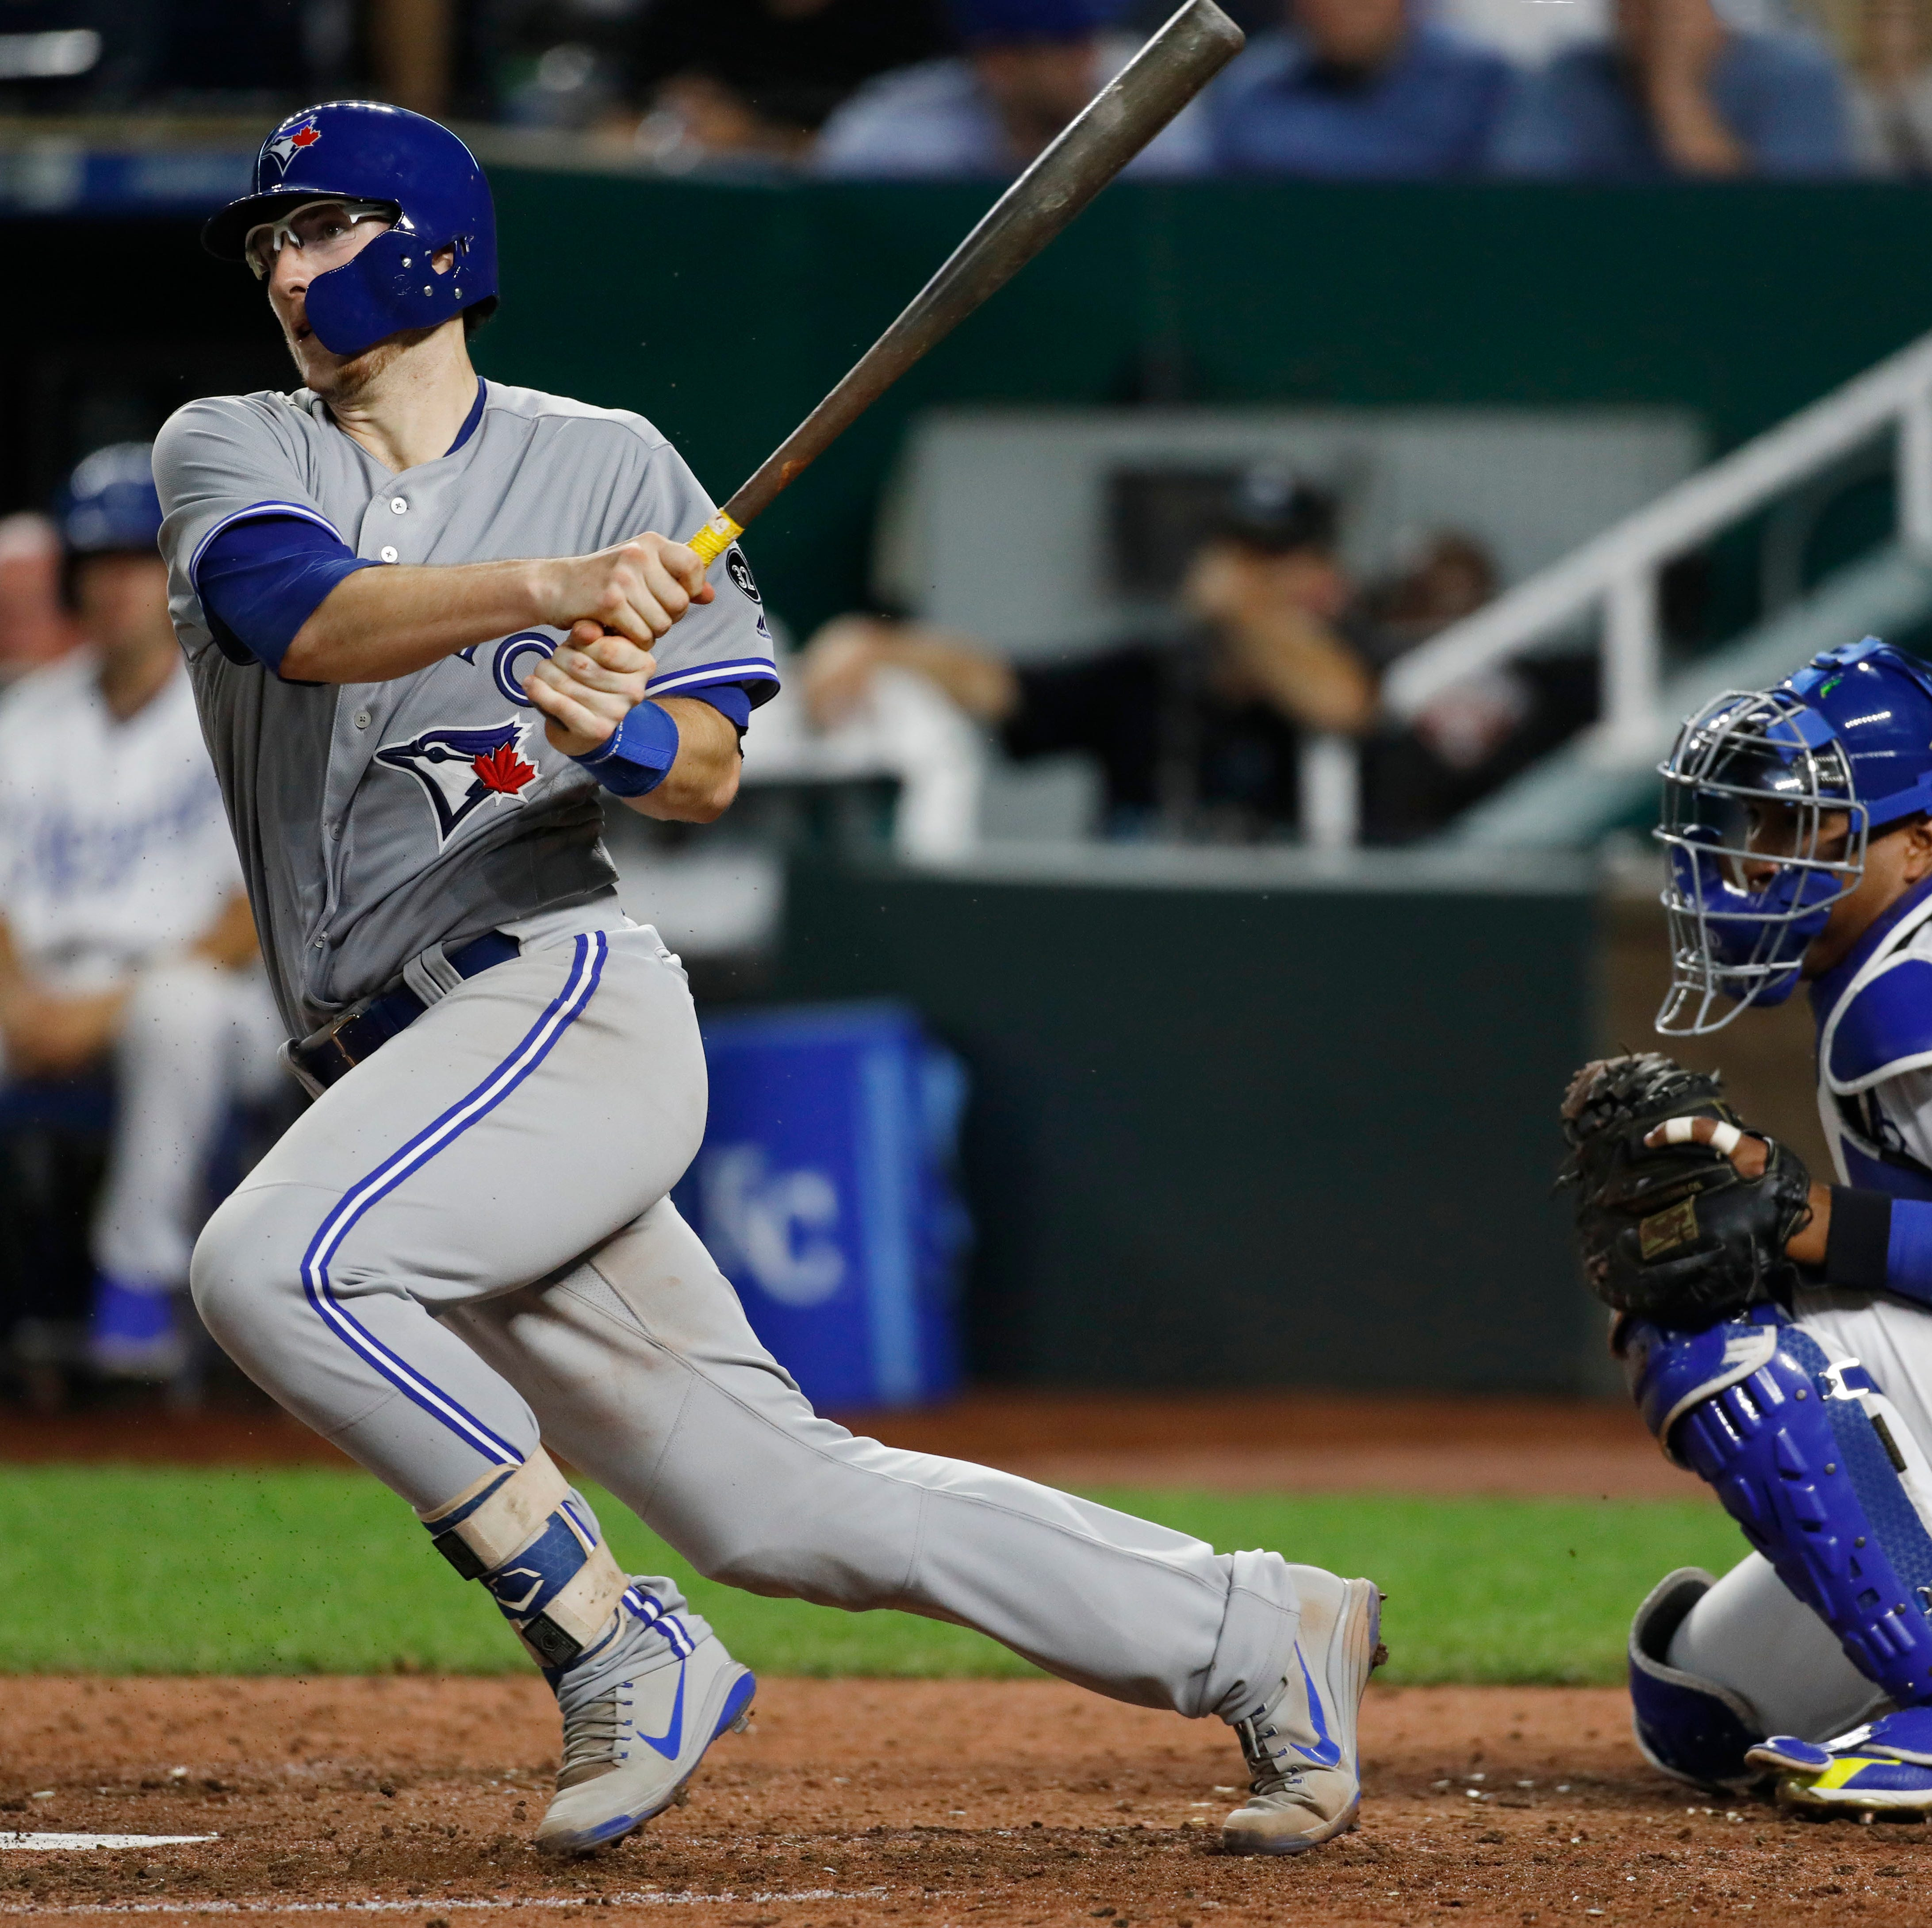 Danny Jansen of Appleton West collects two hits in first major league game